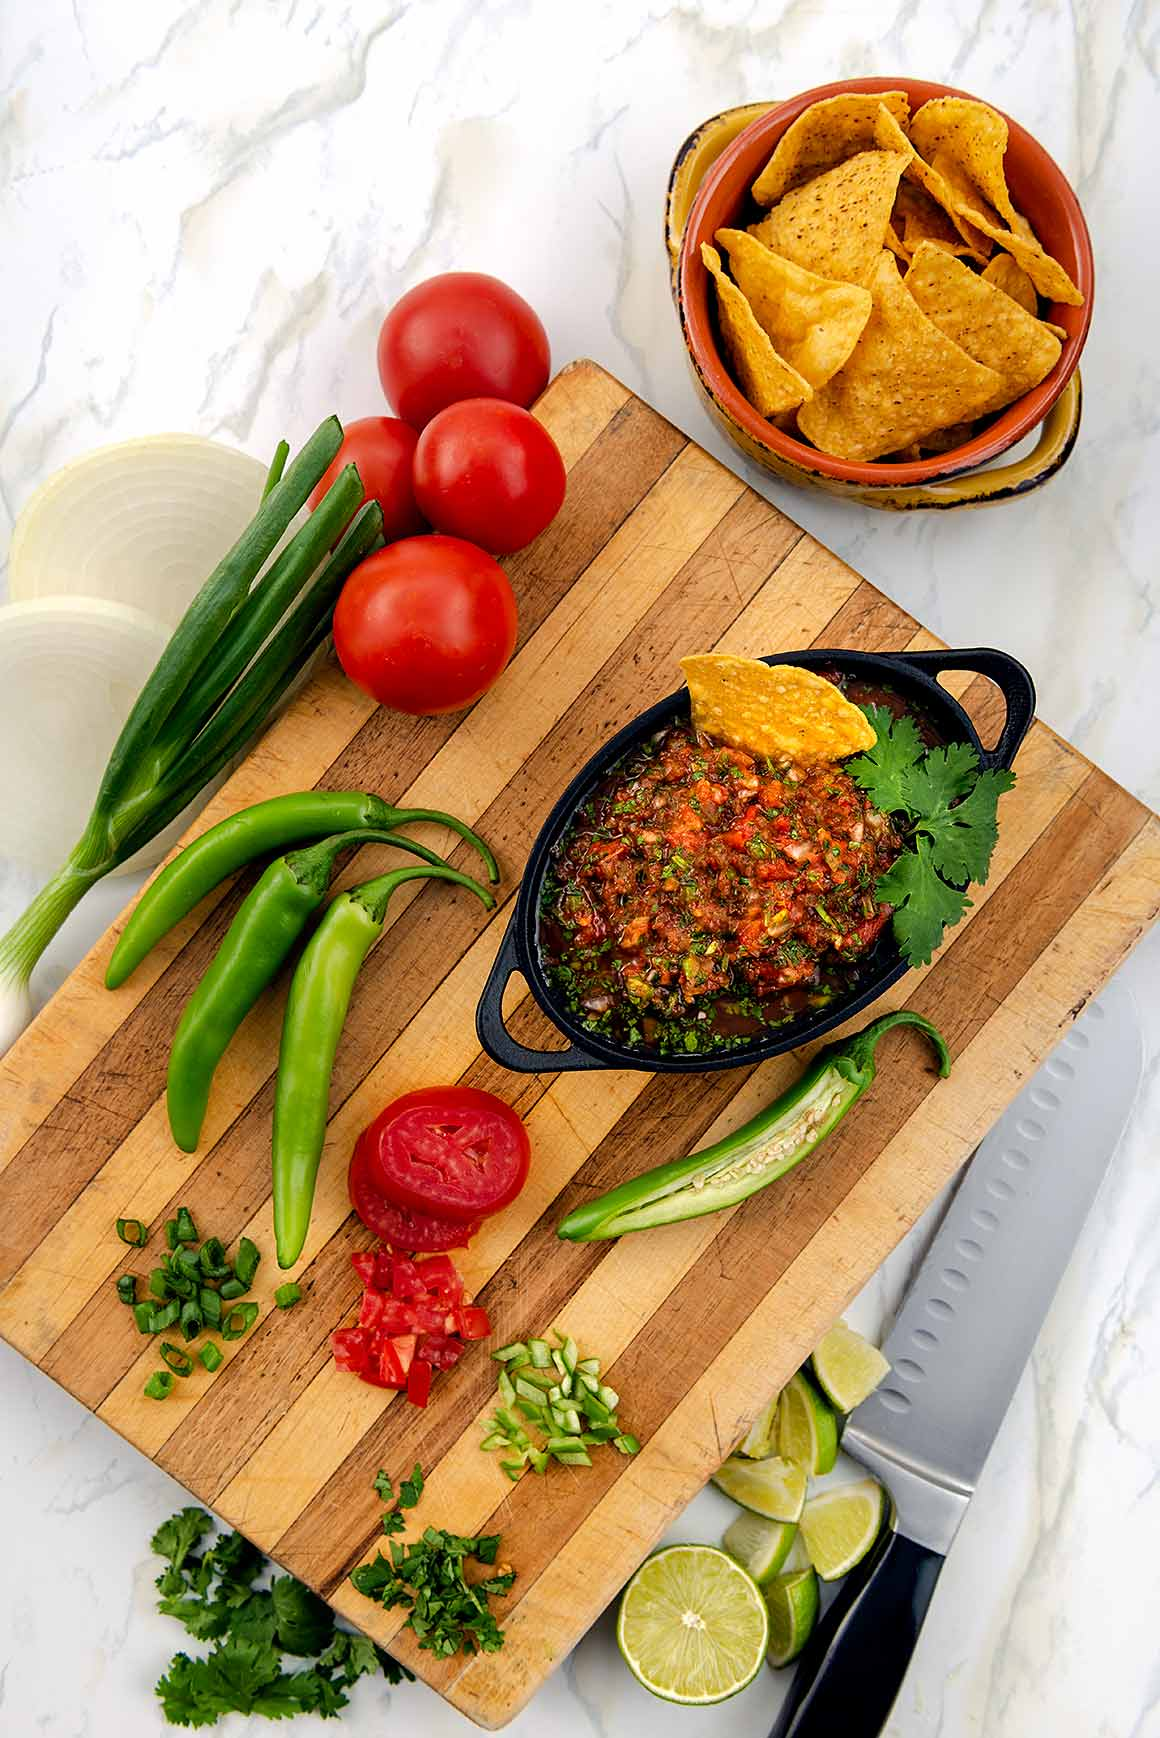 salsa on chopping board with fresh ingredients and chips.